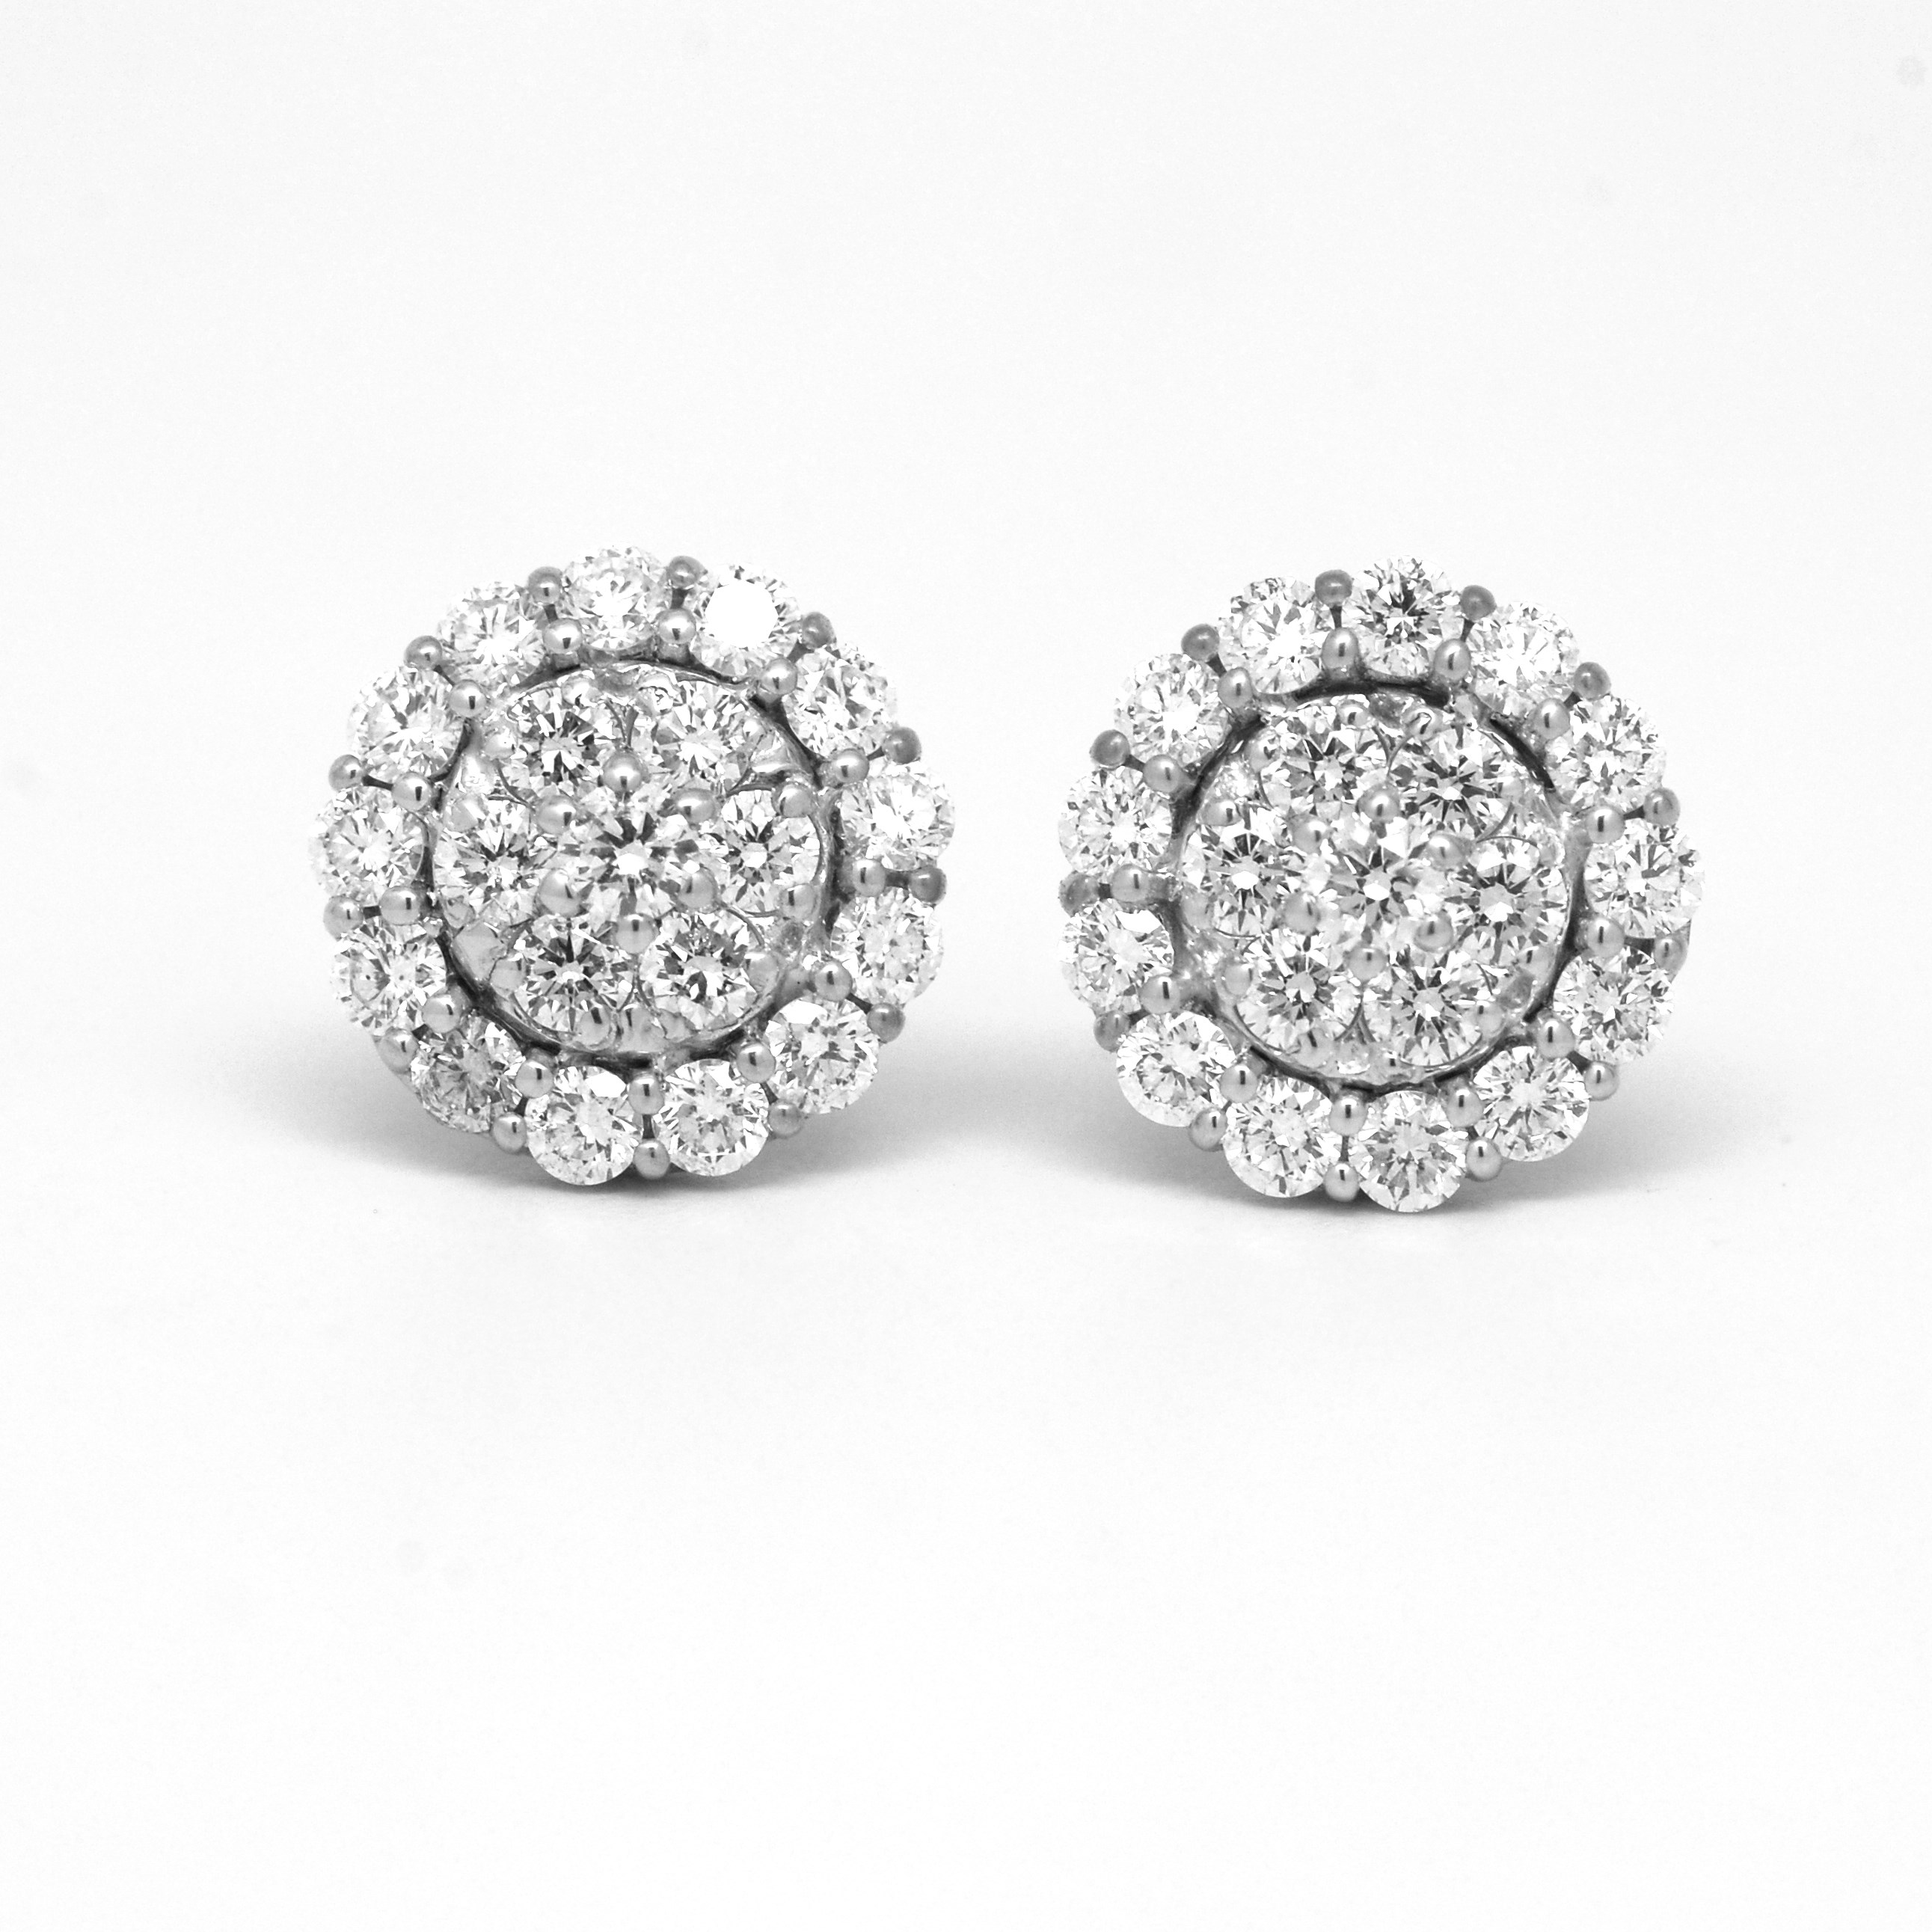 jewellery classic graff earrings collections stud diamond round